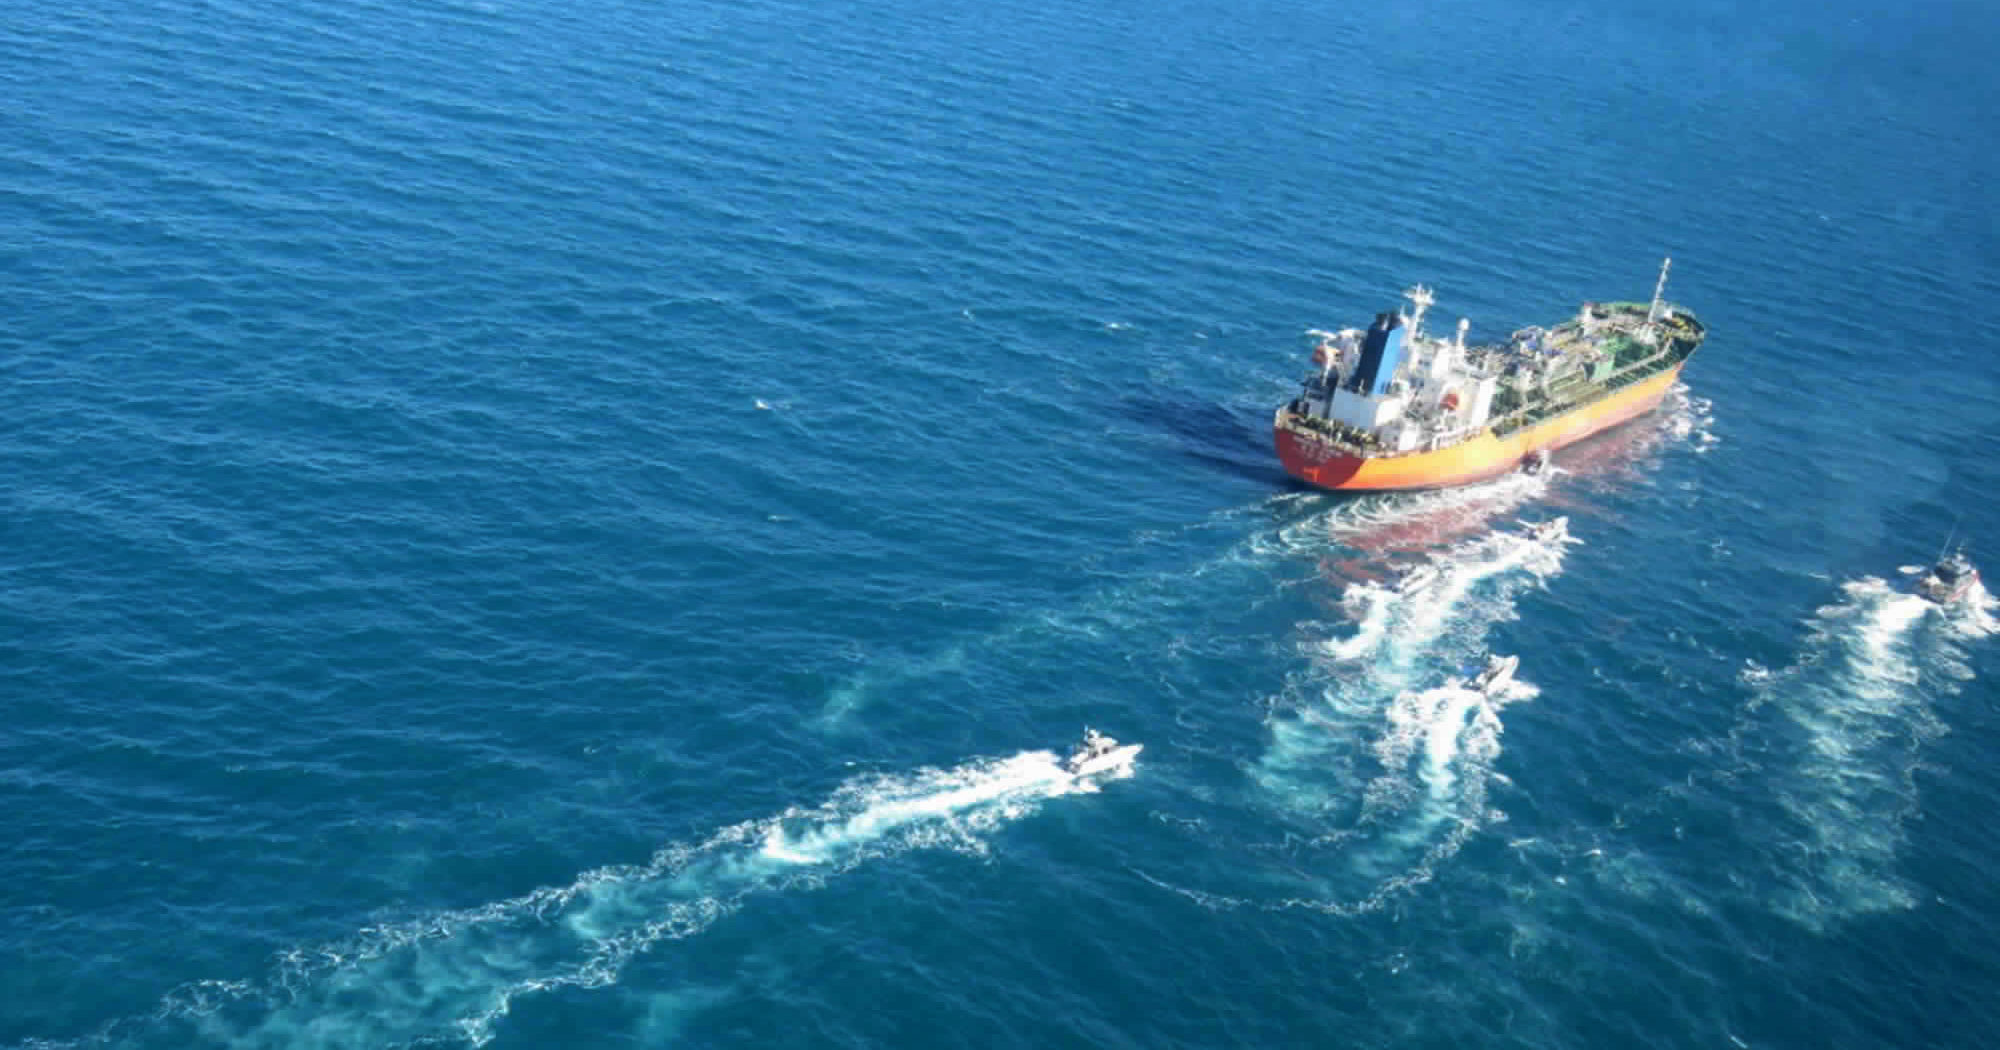 In this photo released on Jan. 4, 2021, the MT Hankuk Chemi, a South Korean-flagged tanker, is escorted by Iranian Revolutionary Guard boats on the Persian Gulf.